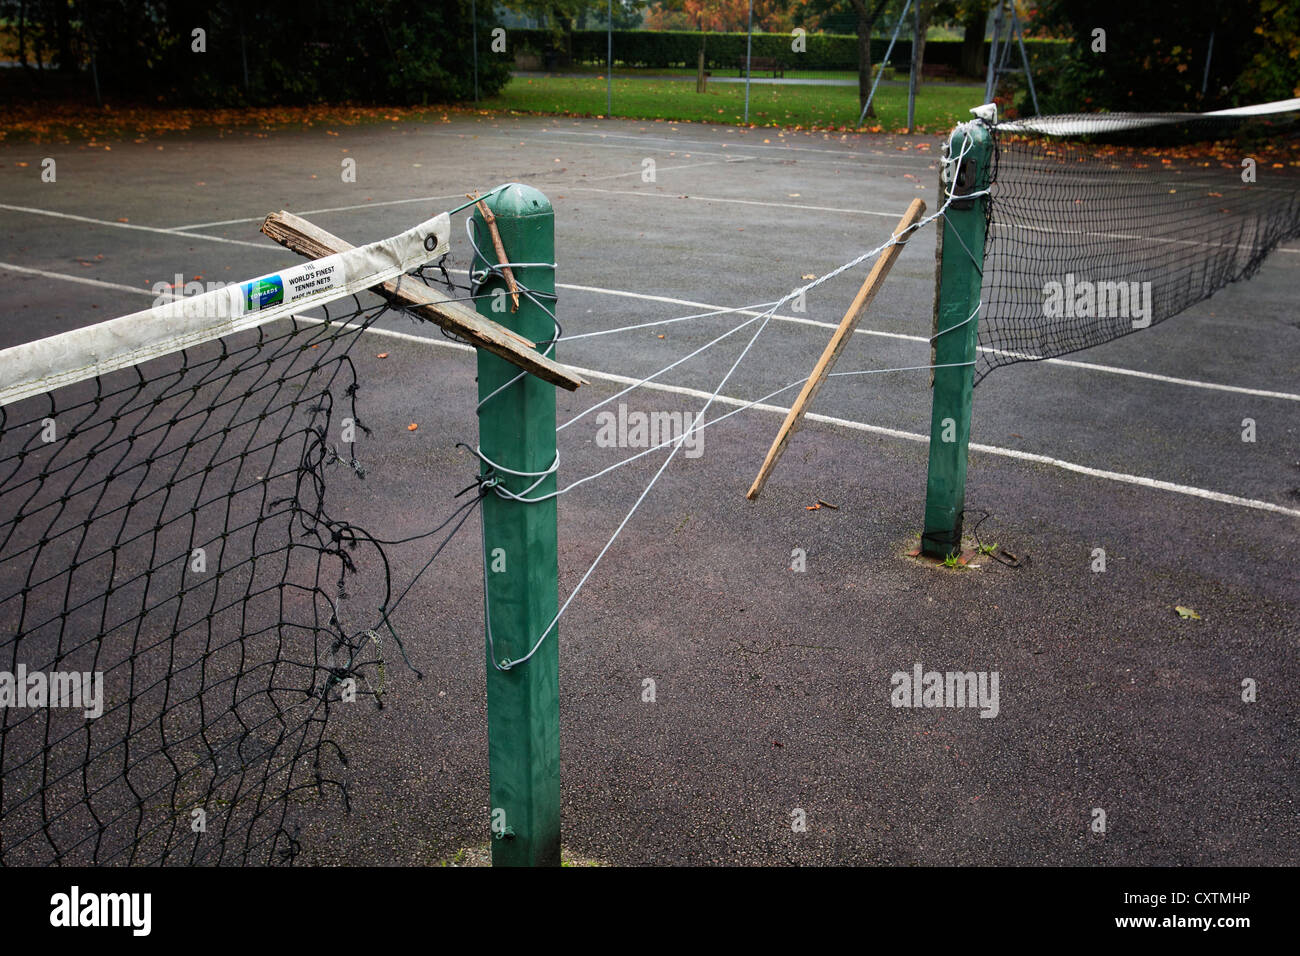 Tennis nets in disrepair on municipal park courts in the UK. - Stock Image